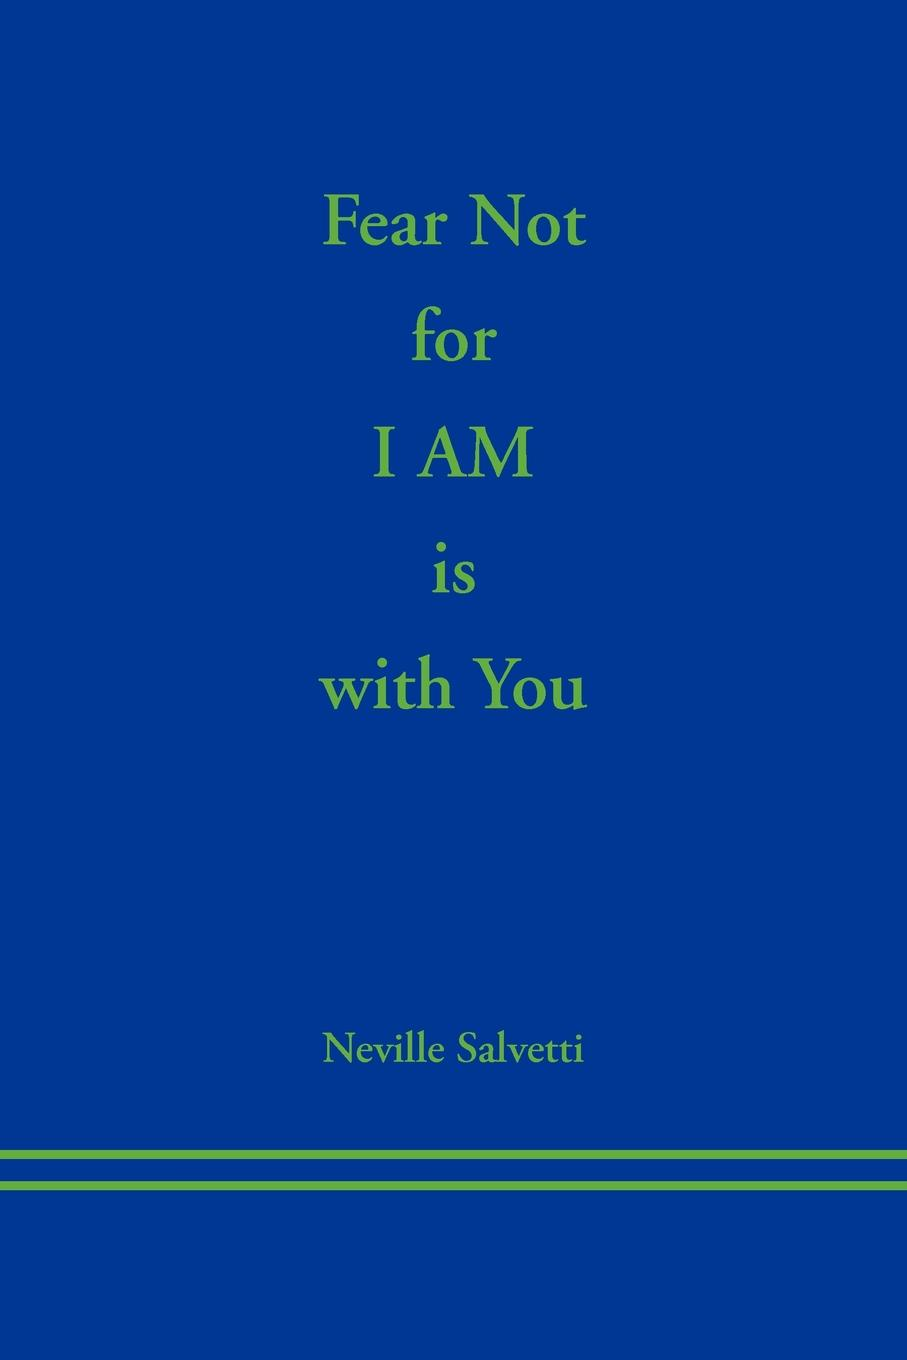 лучшая цена Neville Salvetti Fear Not for I AM is With You